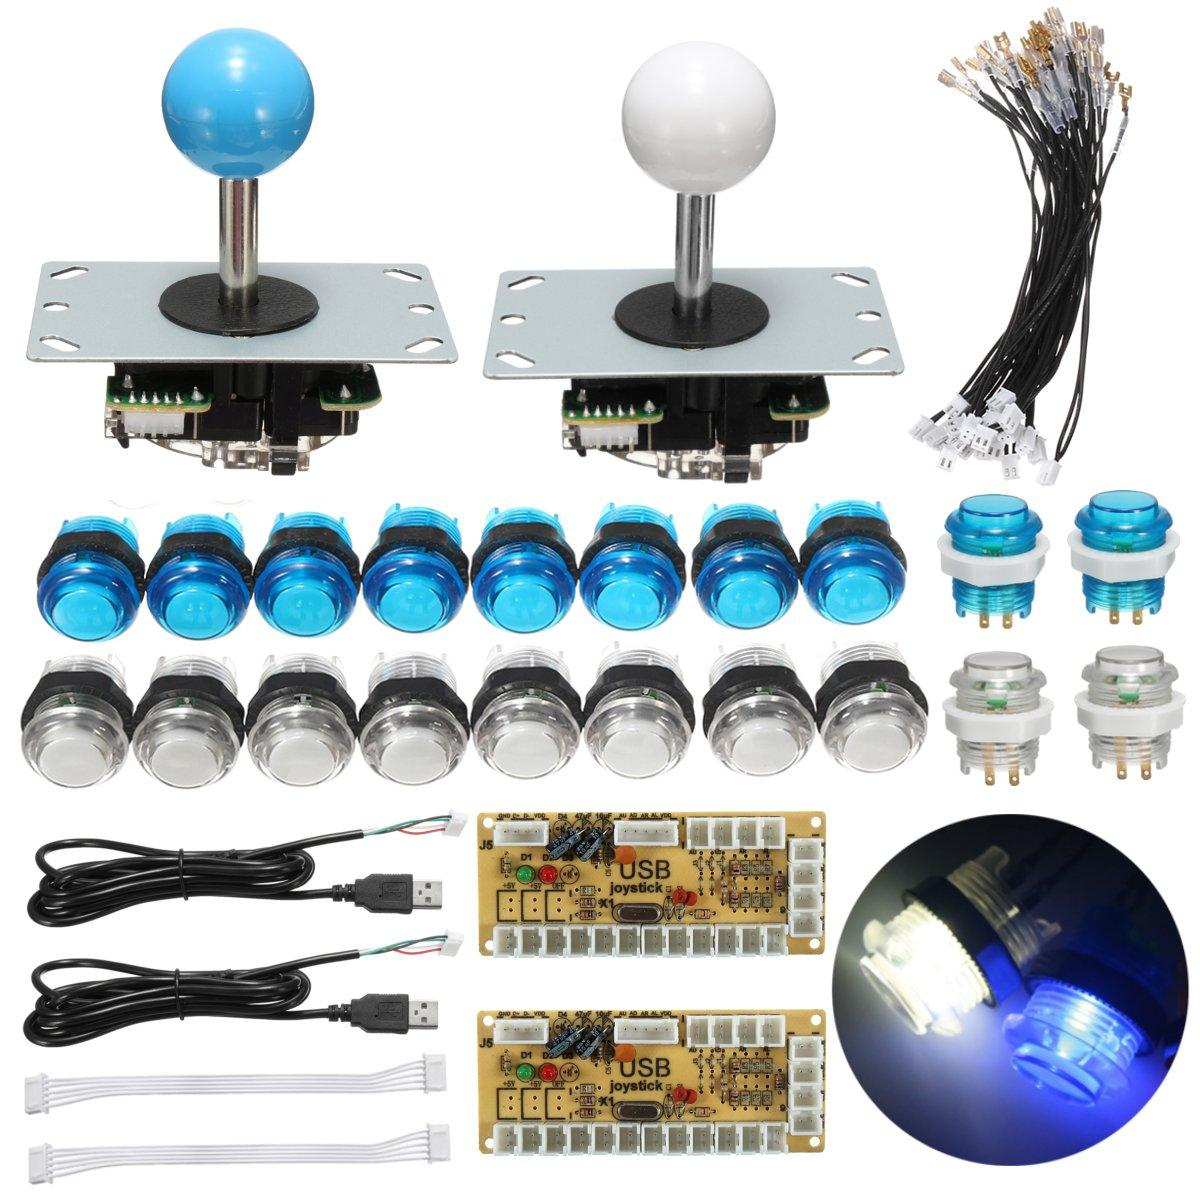 Zero Delay Joystick Arcade DIY Kit Parts With LED Push Button + Joystick + USB Encoder + Cables Game Arcade Joystick DIY Kits arcade parts bundles kit with 60 in 1 board power supply joystick push button microswitch harness glass clips coin door camlock